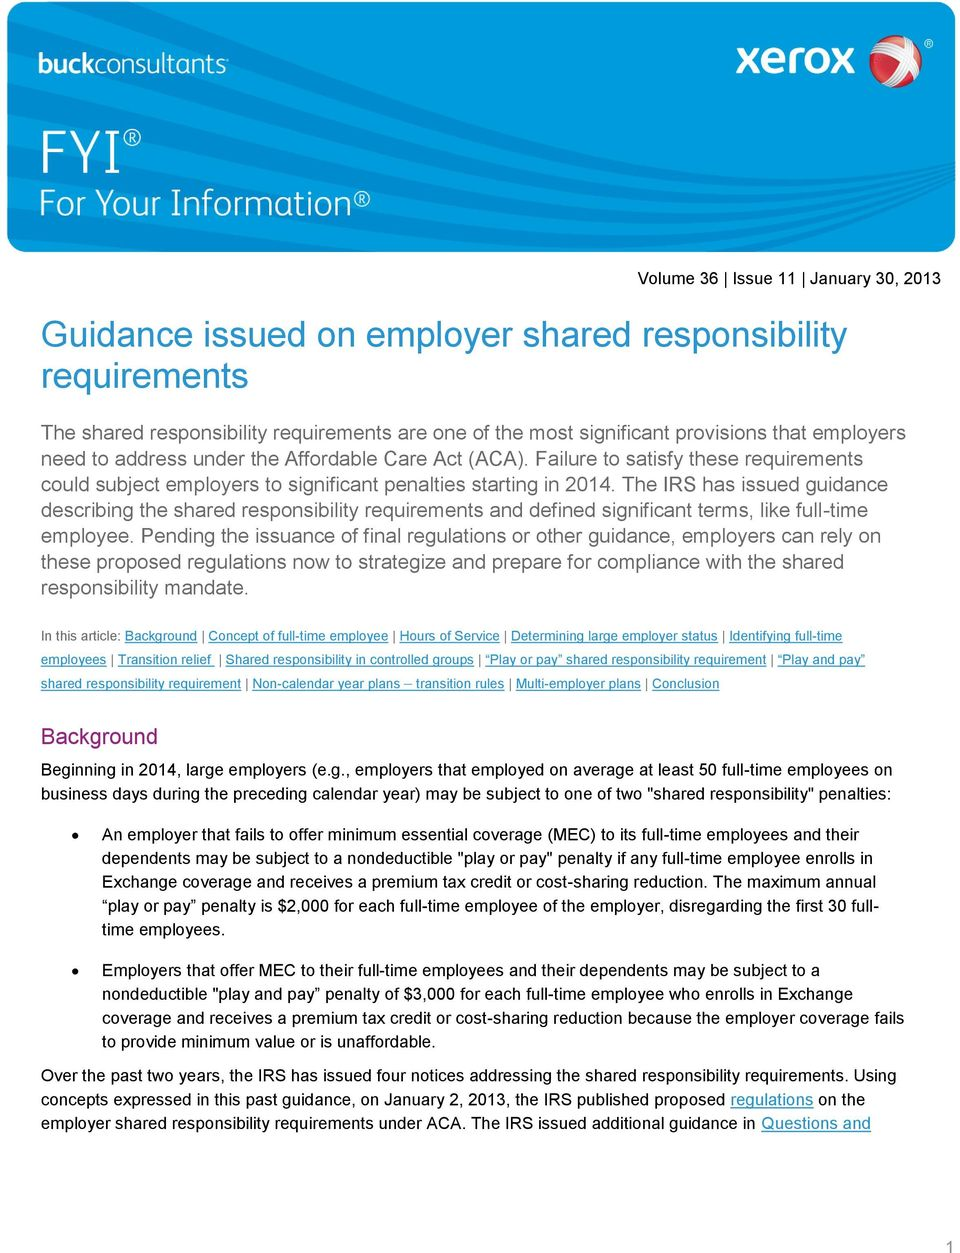 The IRS has issued guidance describing the shared responsibility requirements and defined significant terms, like full-time employee.